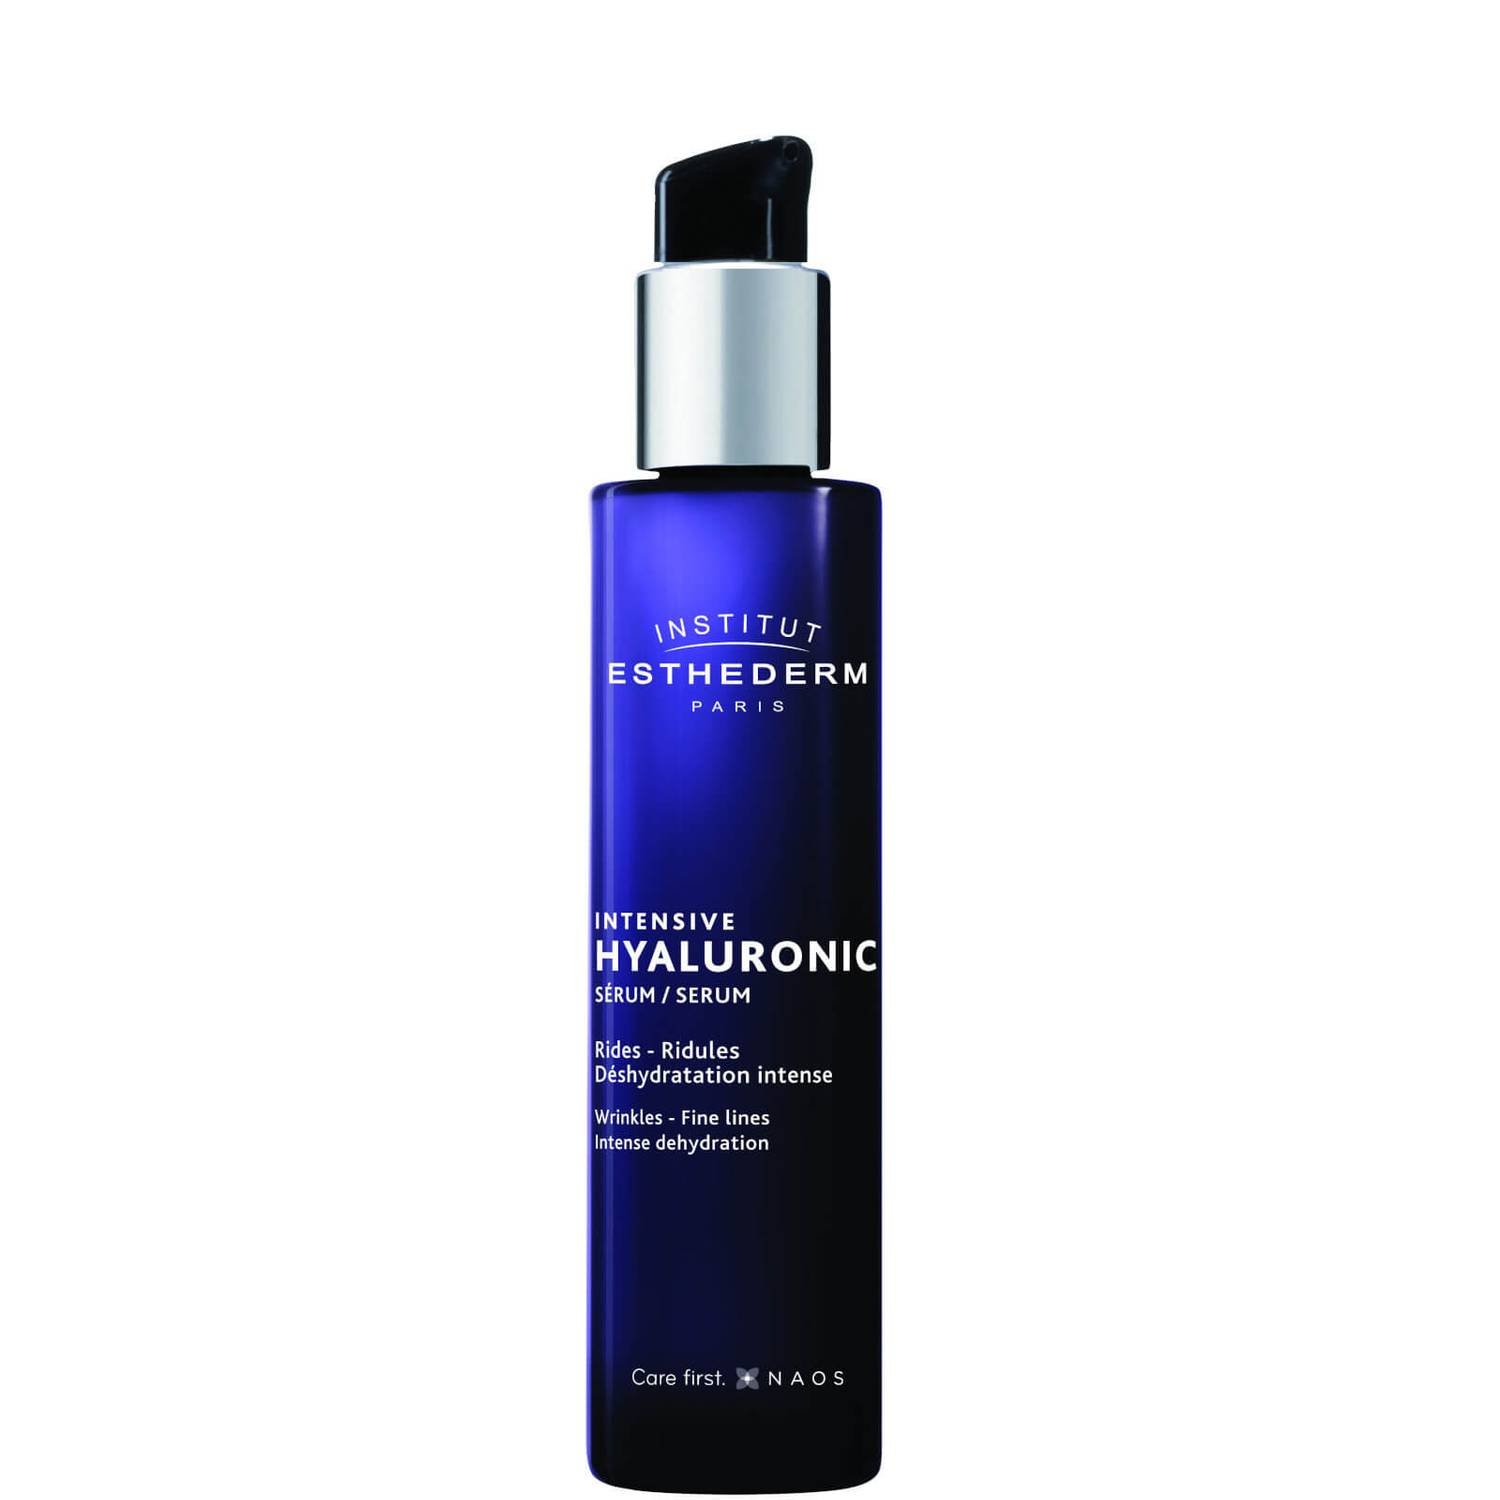 Intensive Hyaluronic Acid Serum by Institut Esthederm, one of the best French hydrating serums.